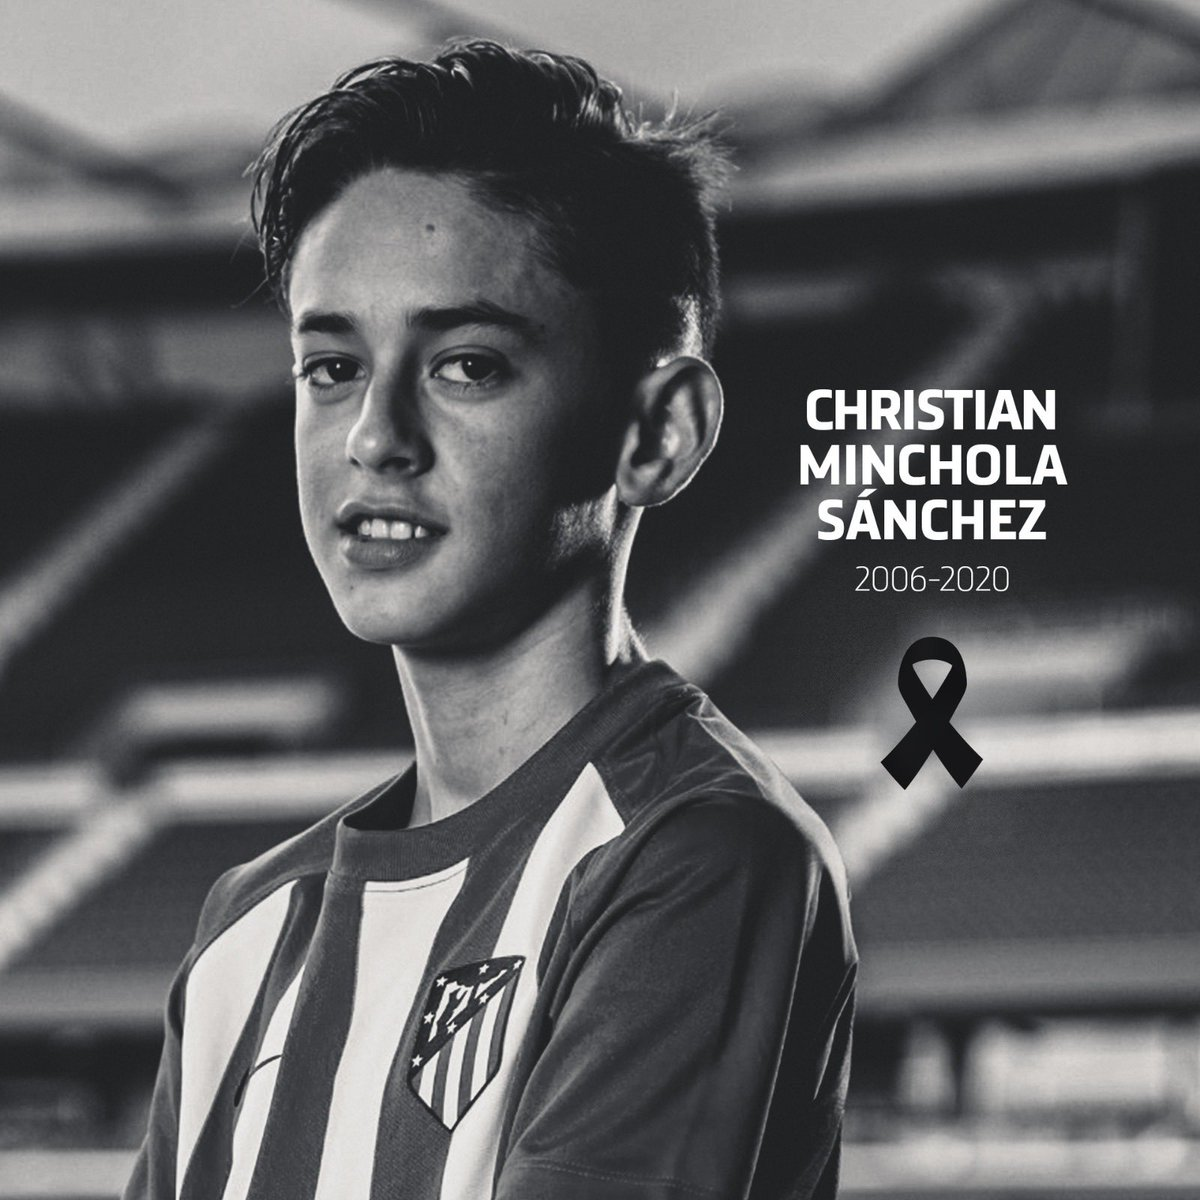 Atlético de Madrid is mourning the passing of our U14 player Christian Minchola. We join in the grief of his family, teammates and friends. May he rest in peace.